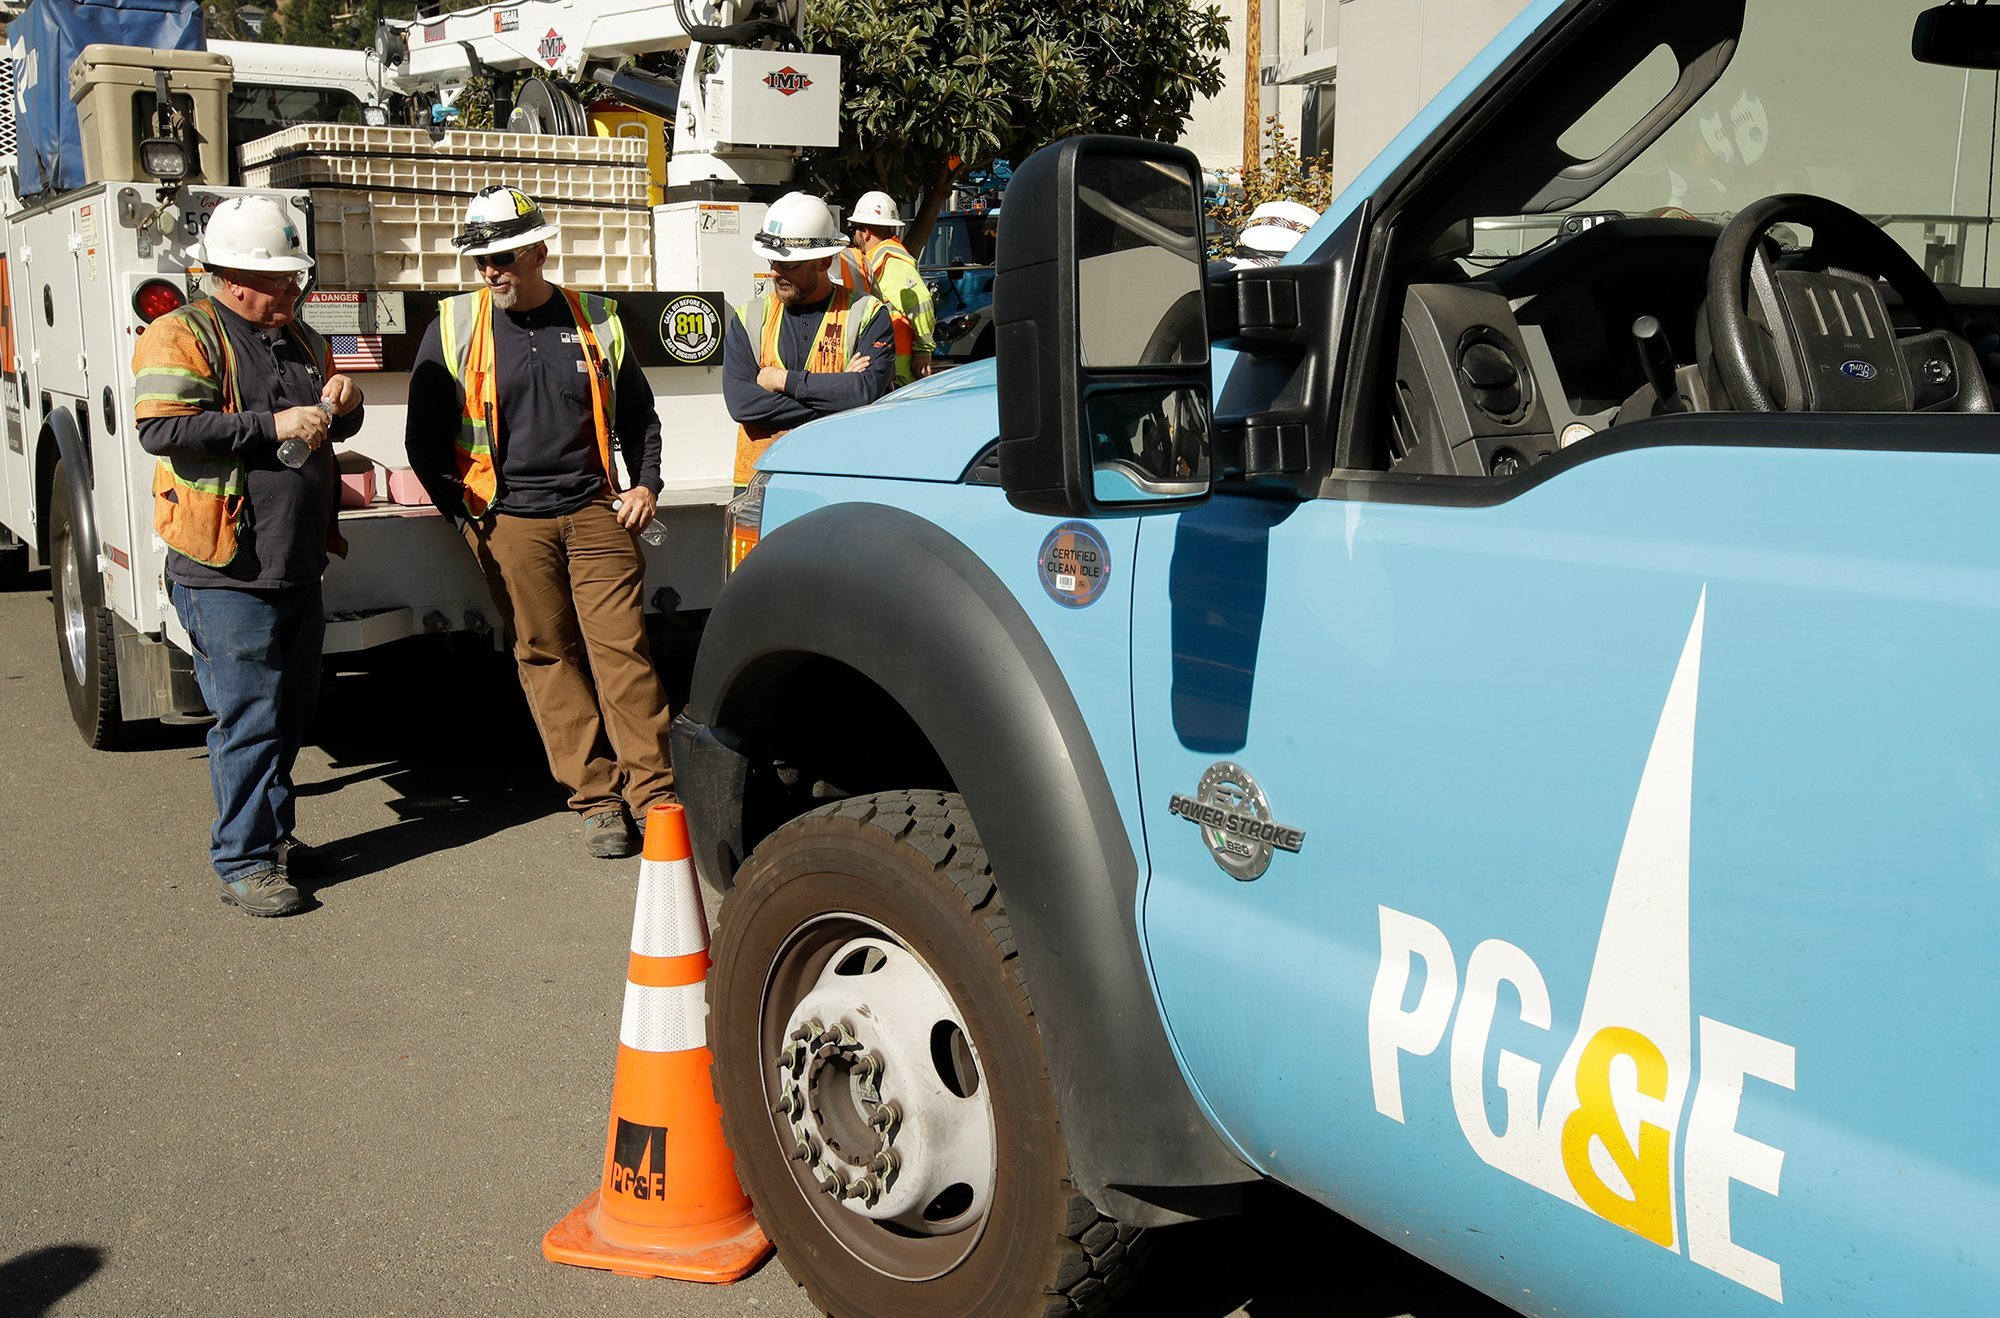 California's largest utility is restoring power to 50,000 customers after wind conditions improved